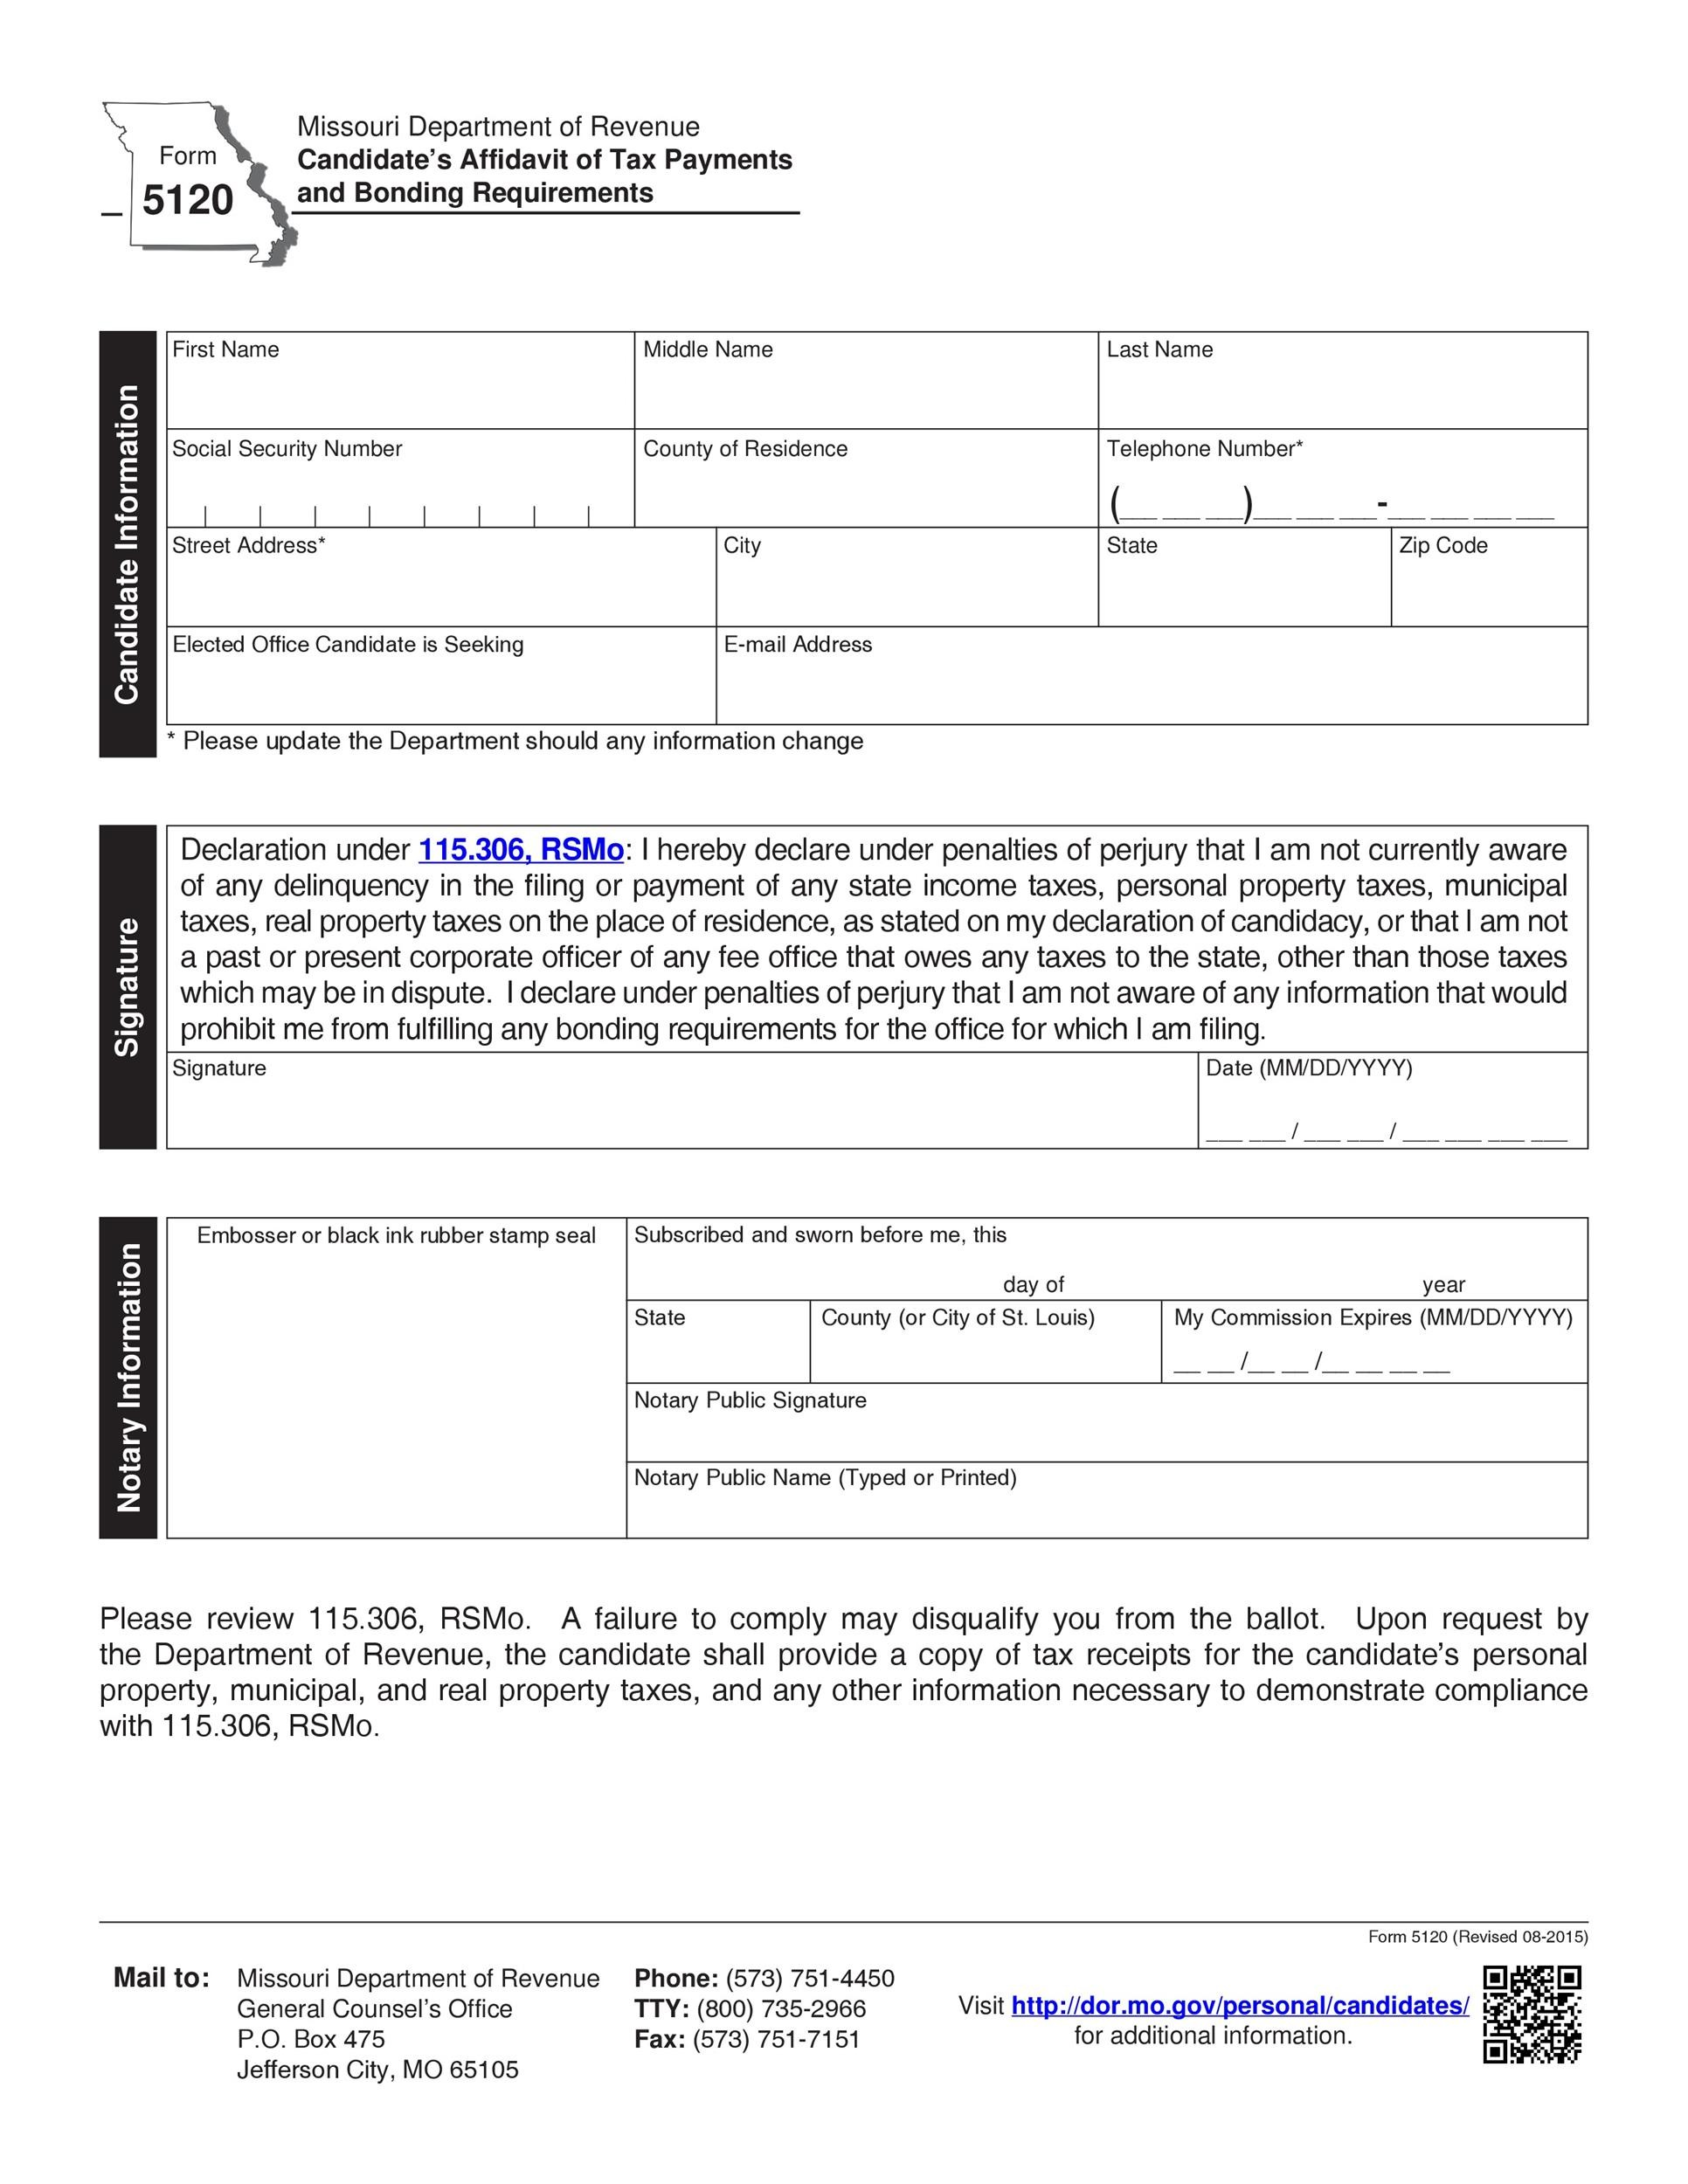 48 sample affidavit forms templates affidavit of support form printable affidavit form 06 altavistaventures Choice Image